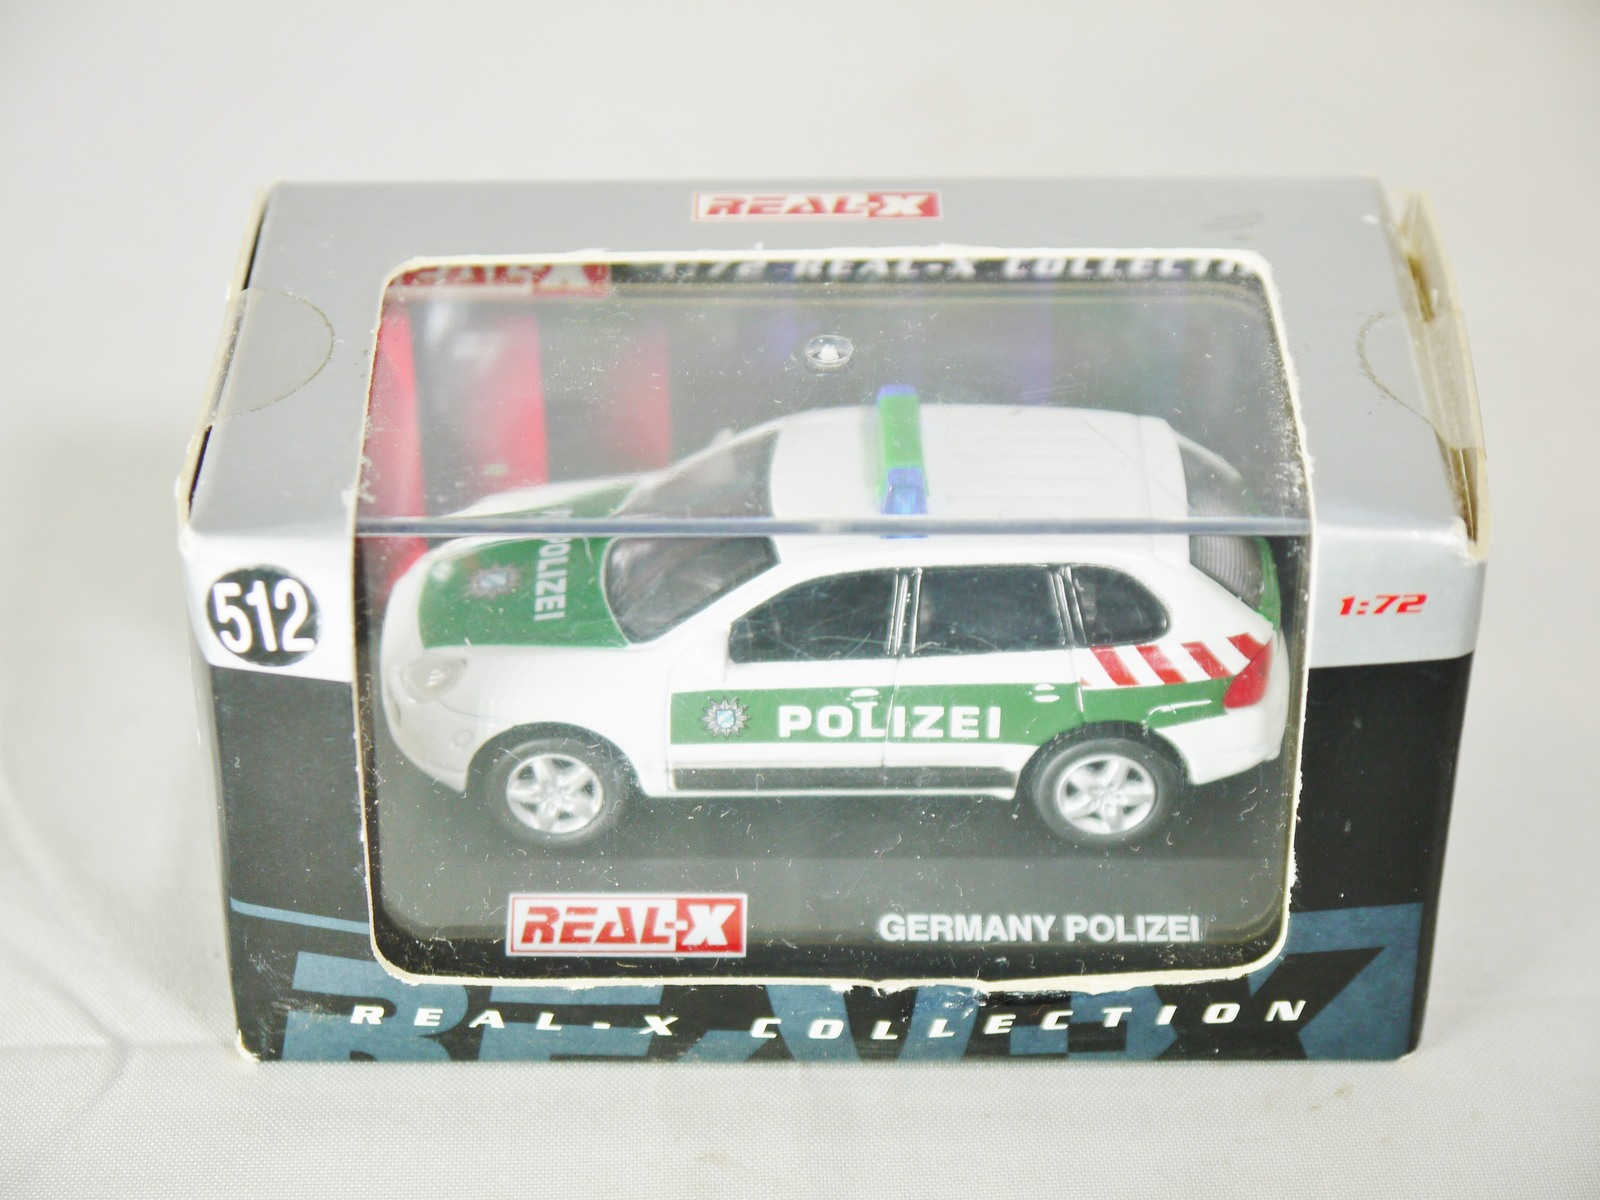 1/72 REAL-X Model Collection GERMANY POLIZEI No. 512 Porsche Cayenne Patrol Car